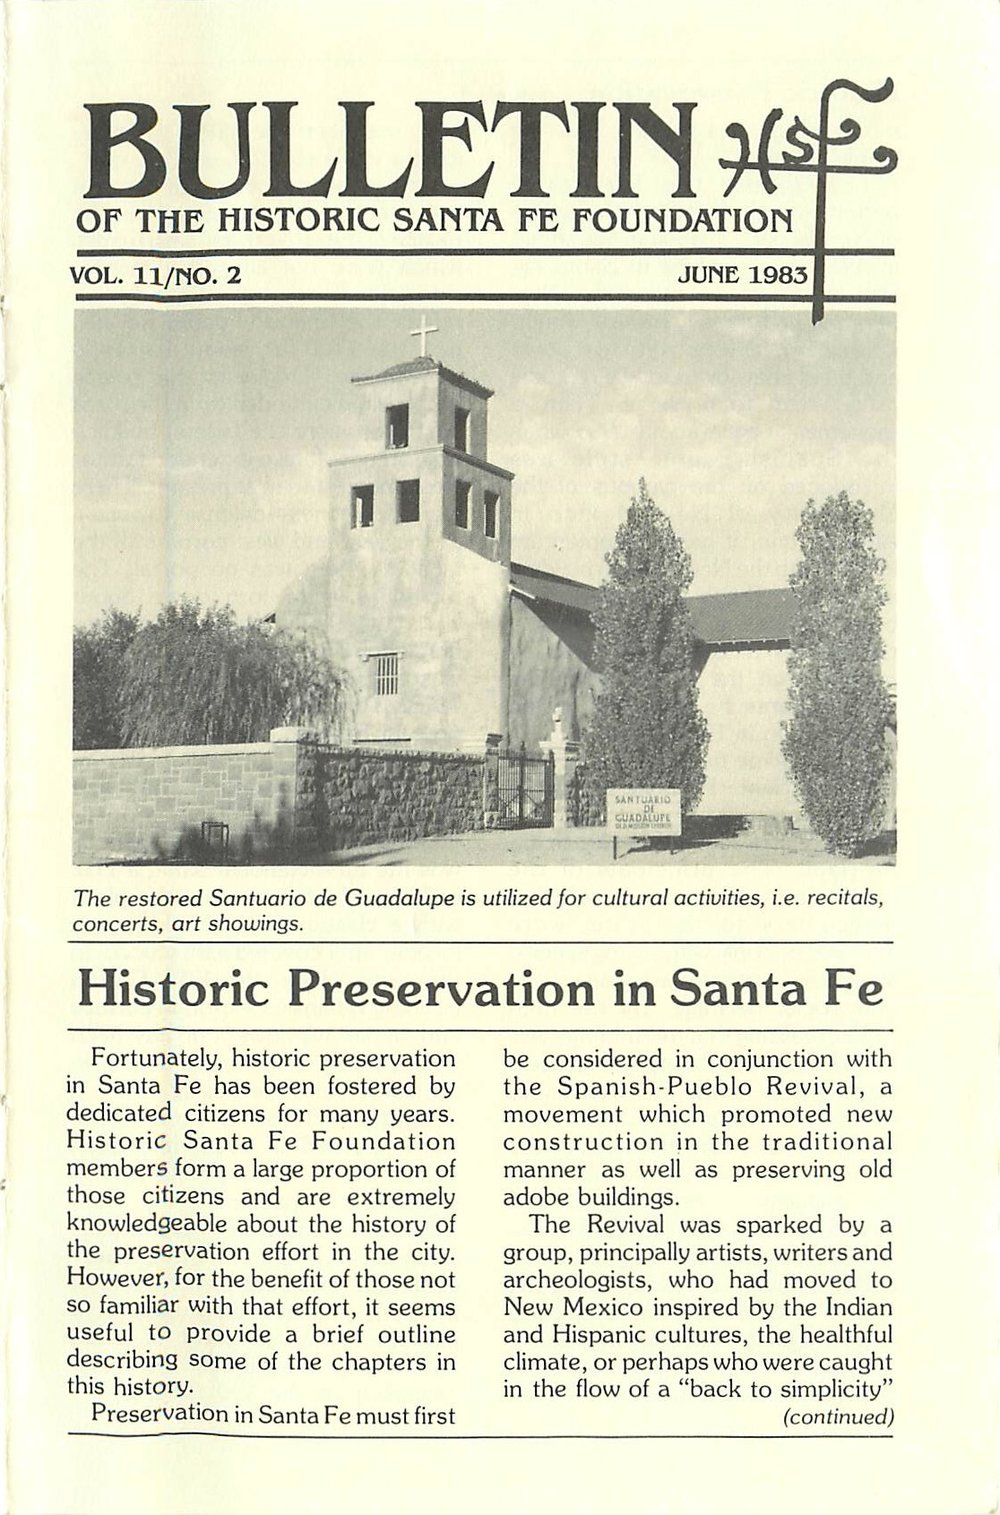 1983 HSFF Bulletin Vol.11 No.2 Cover